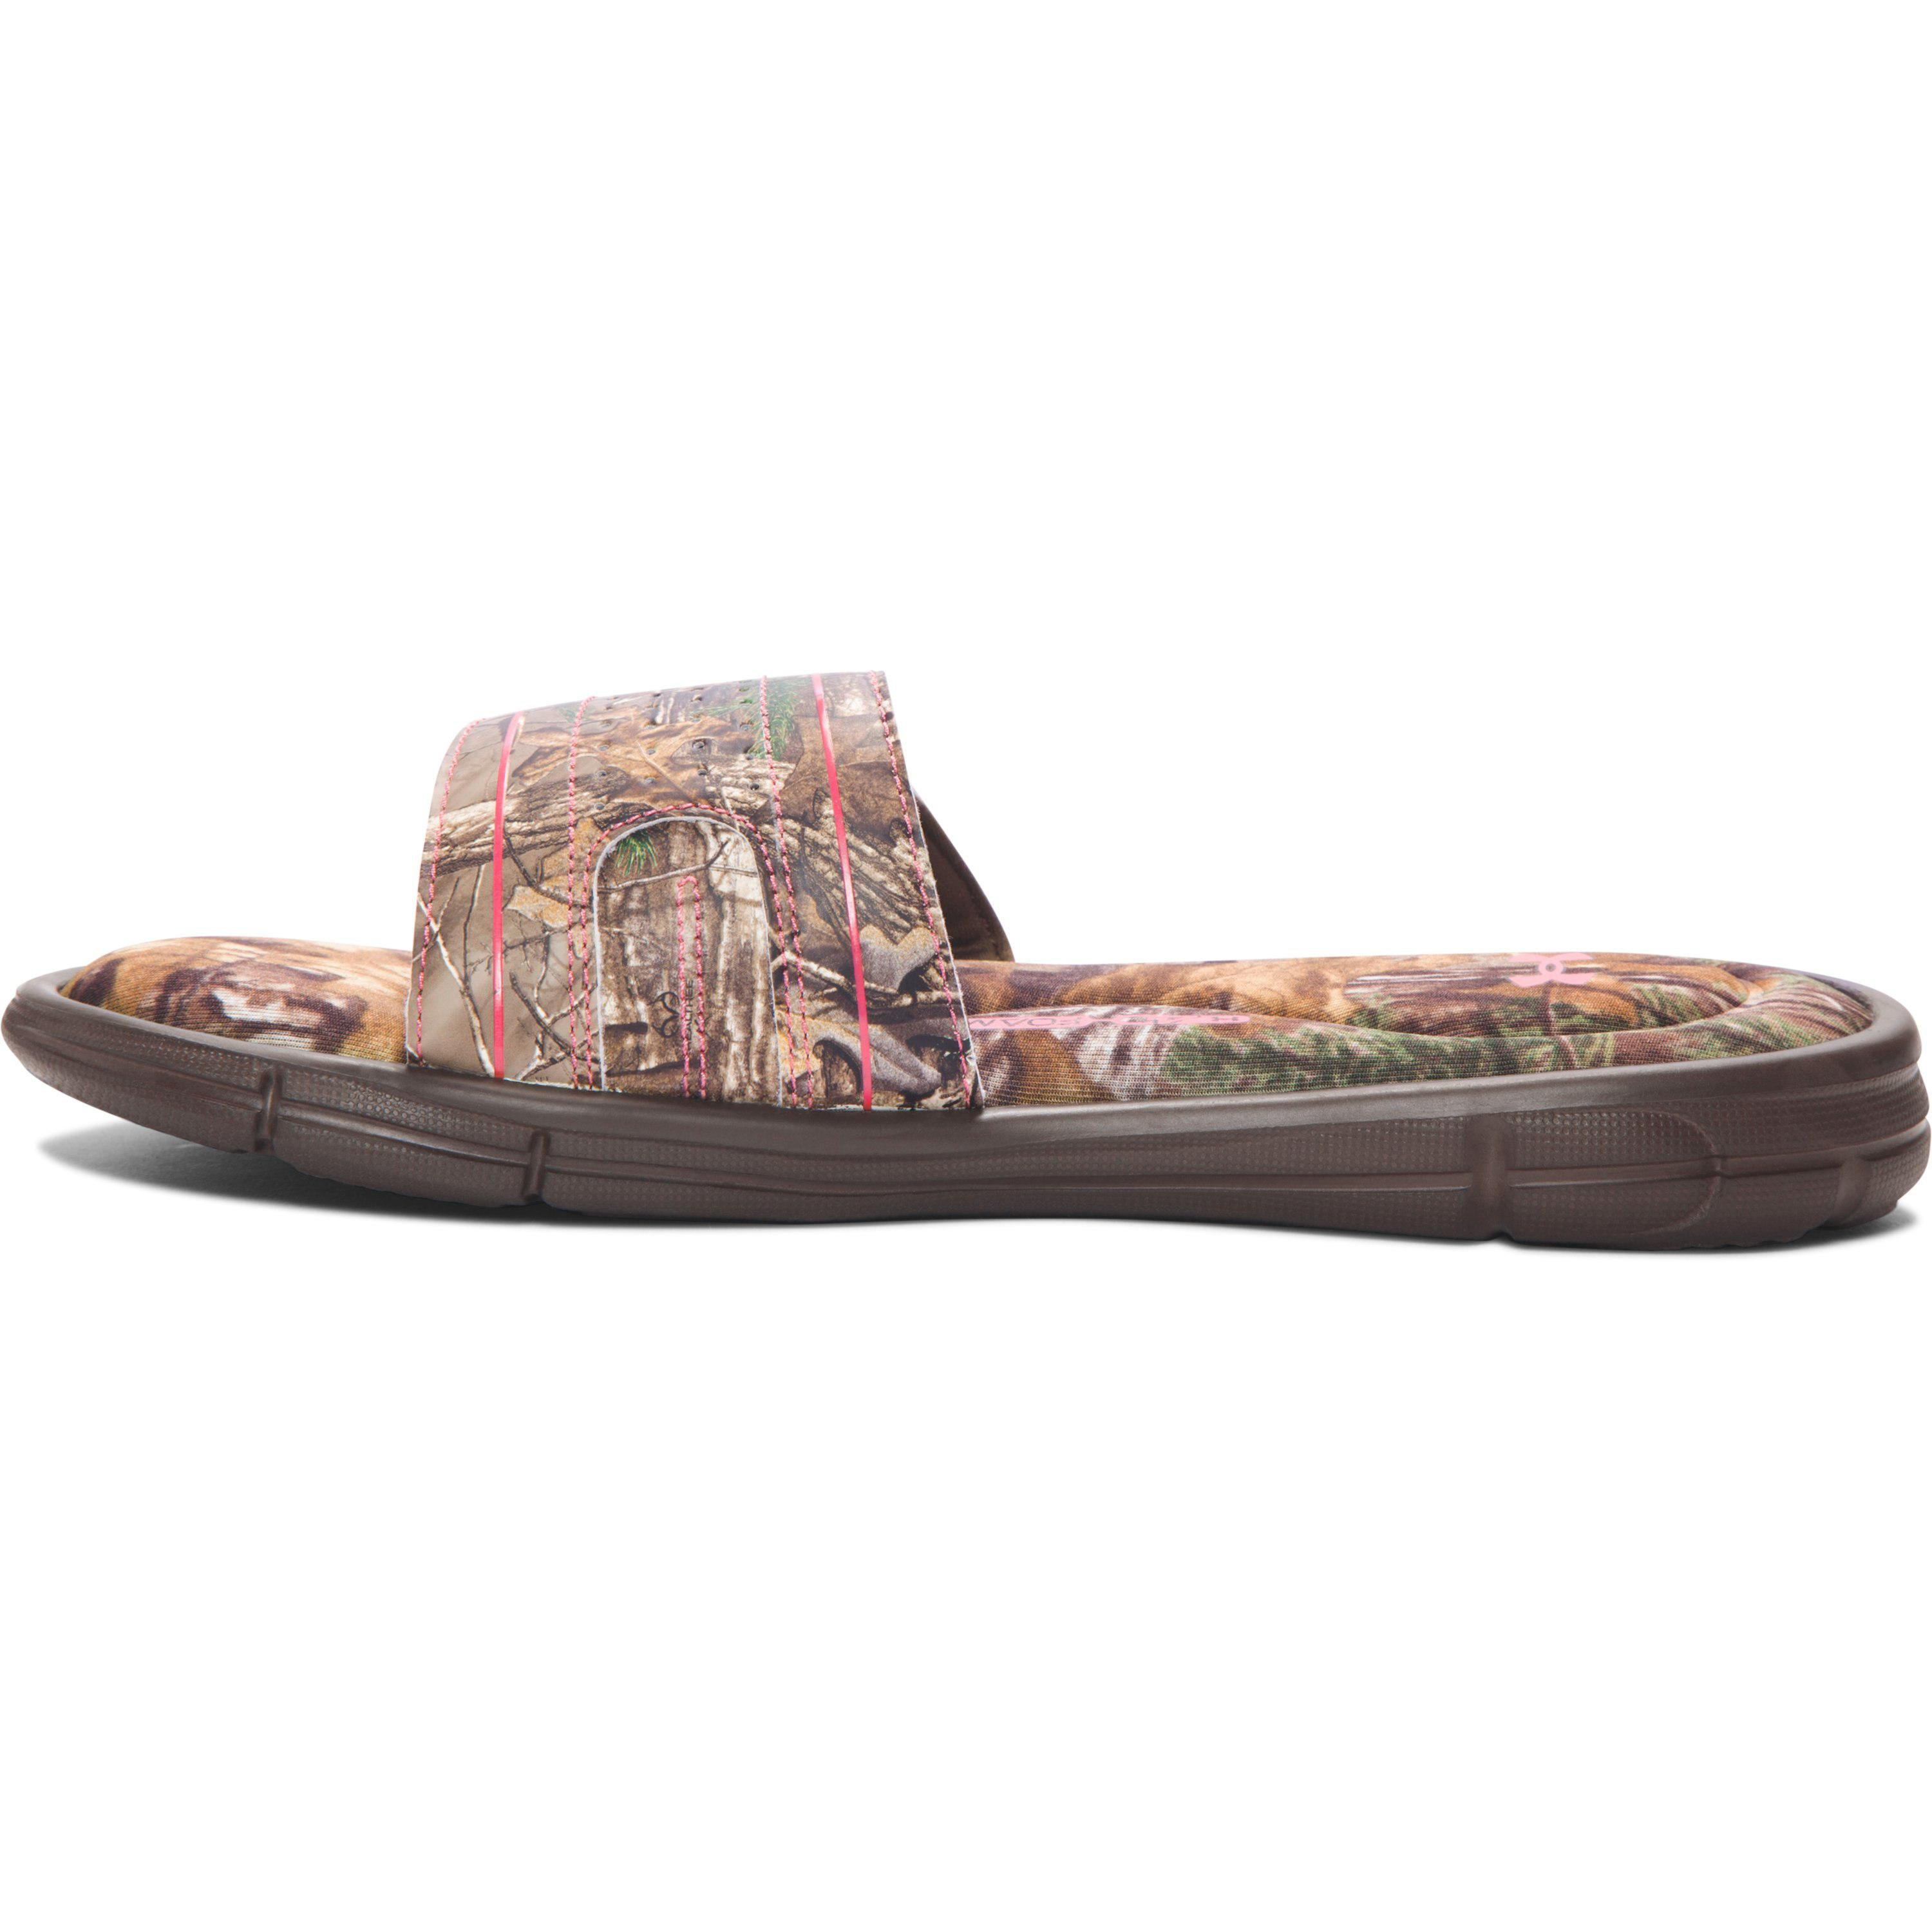 in stock 531a4 7969d Lyst - Under Armour Women s Ua Ignite Camo Viii Slides in Brown